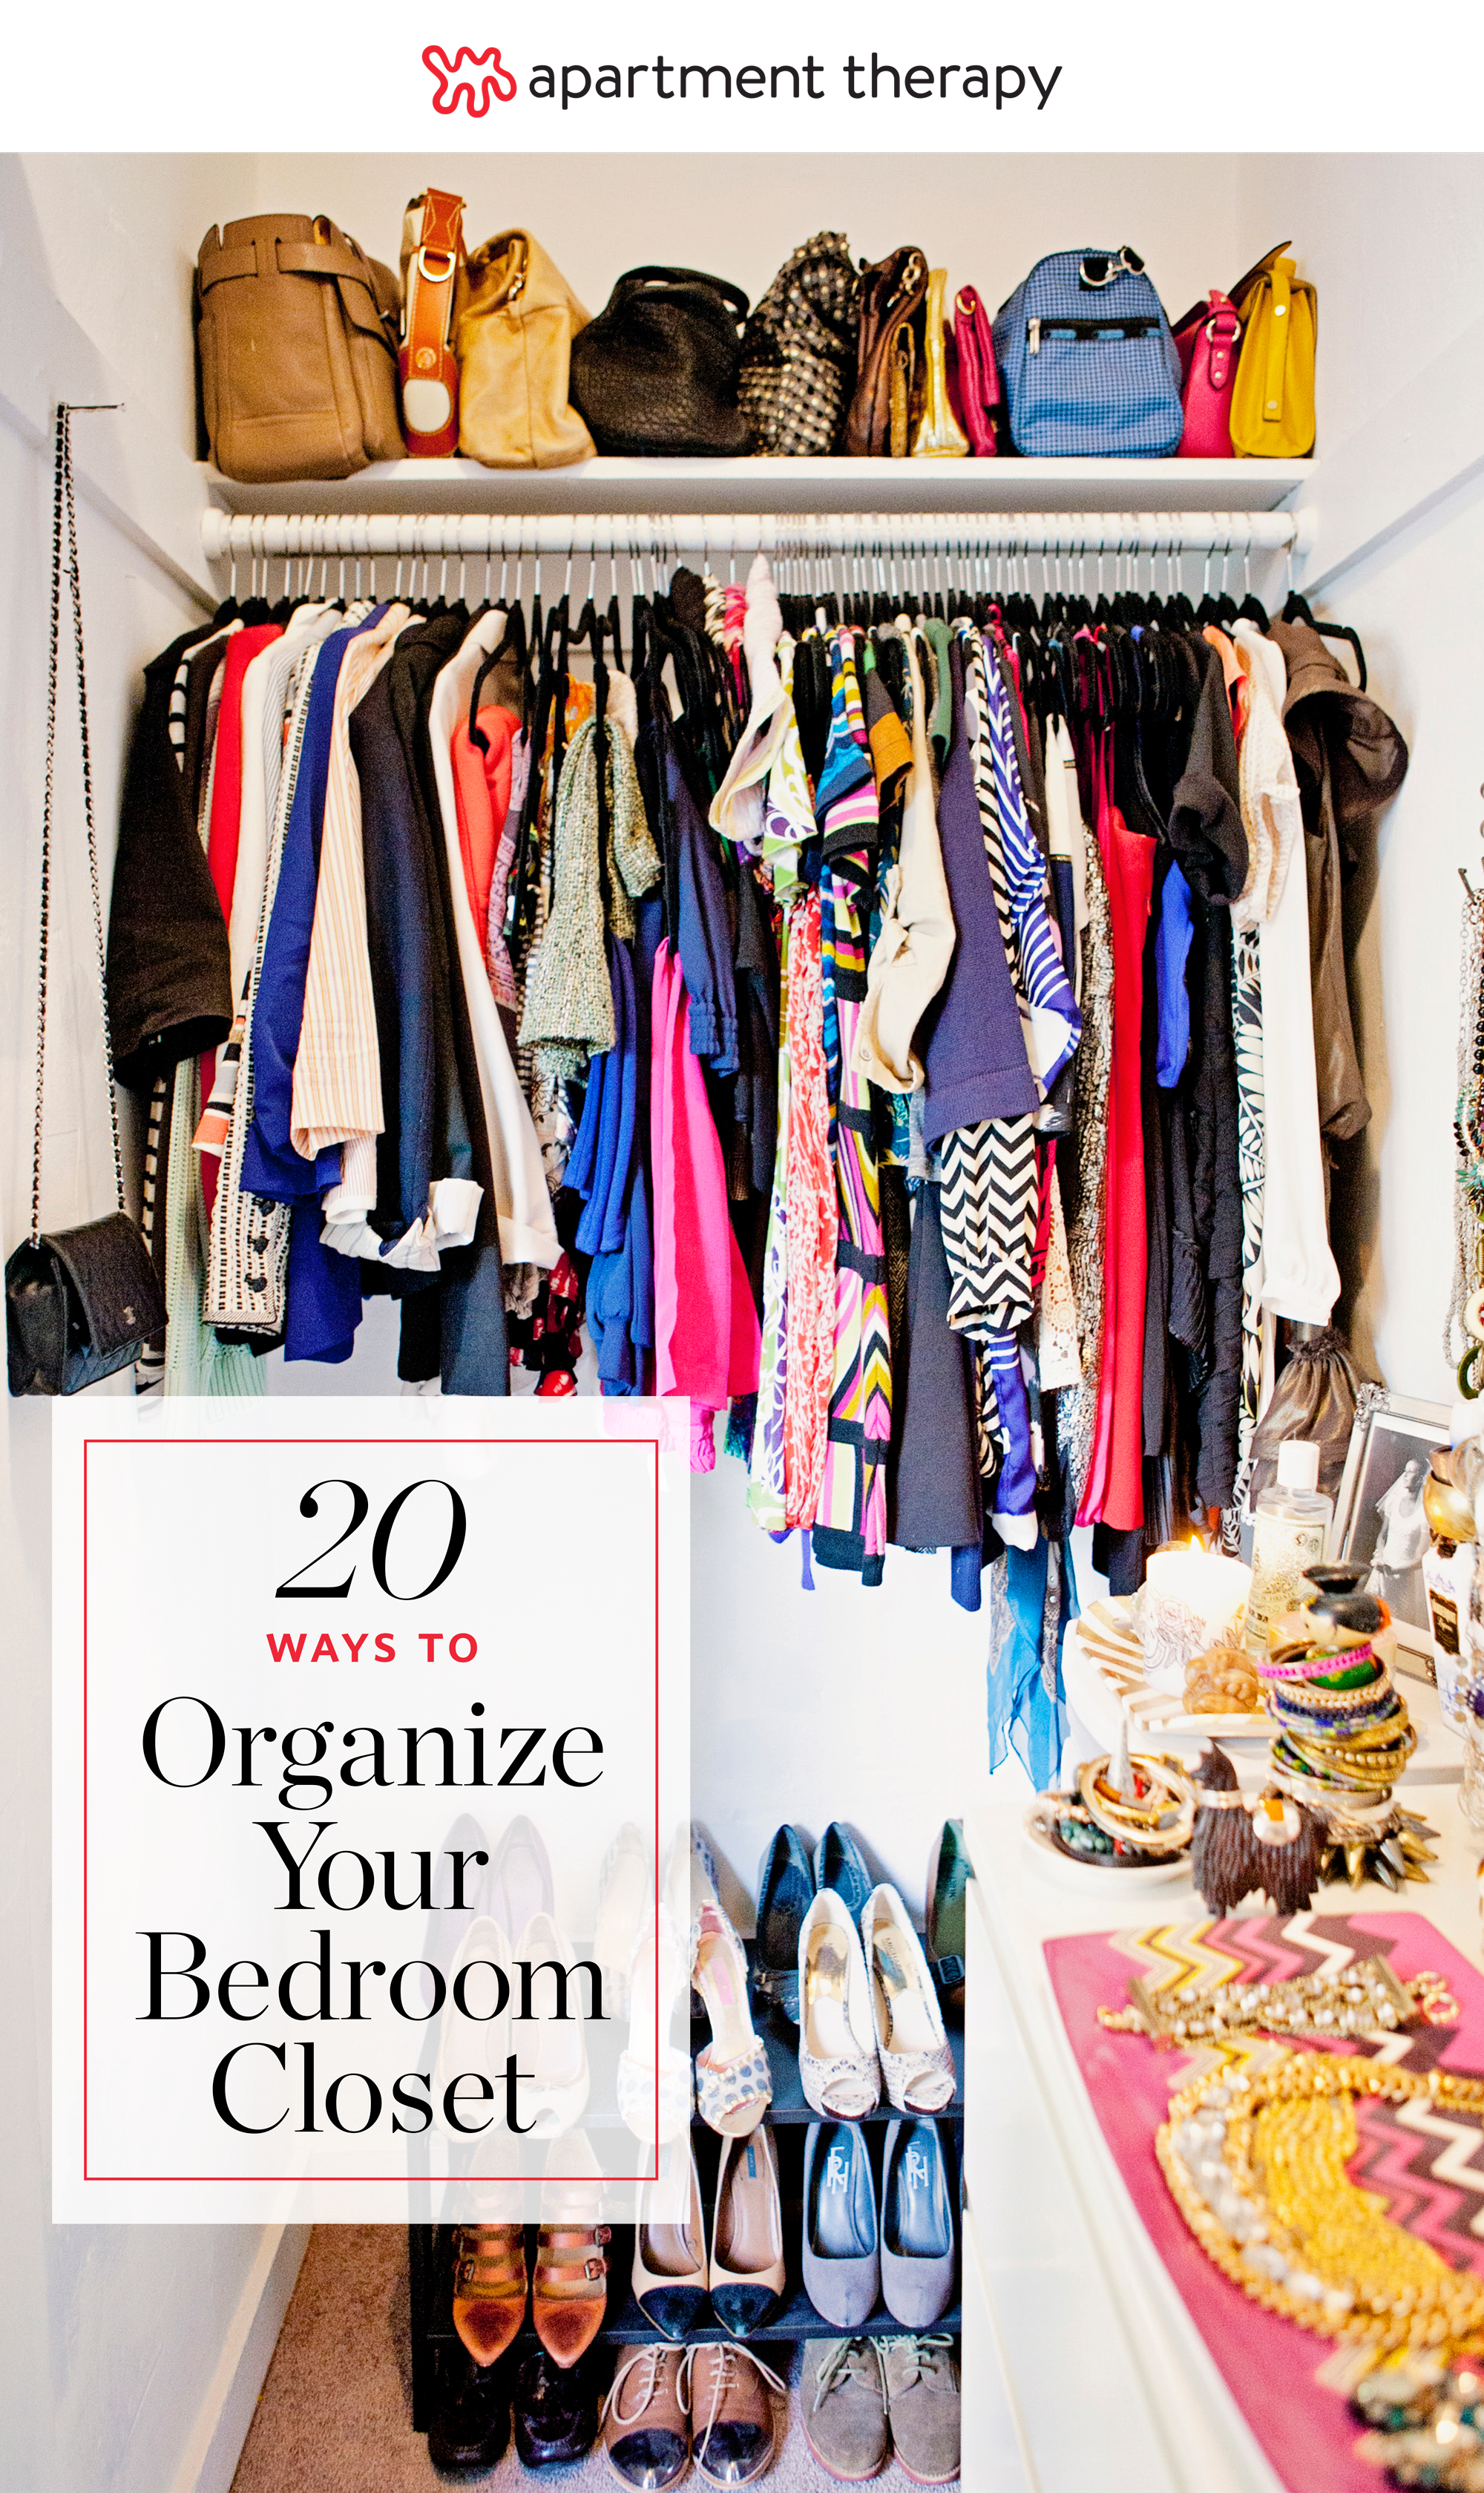 20 Ideas for Organizing Your Bedroom Closet | Apartment Therapy